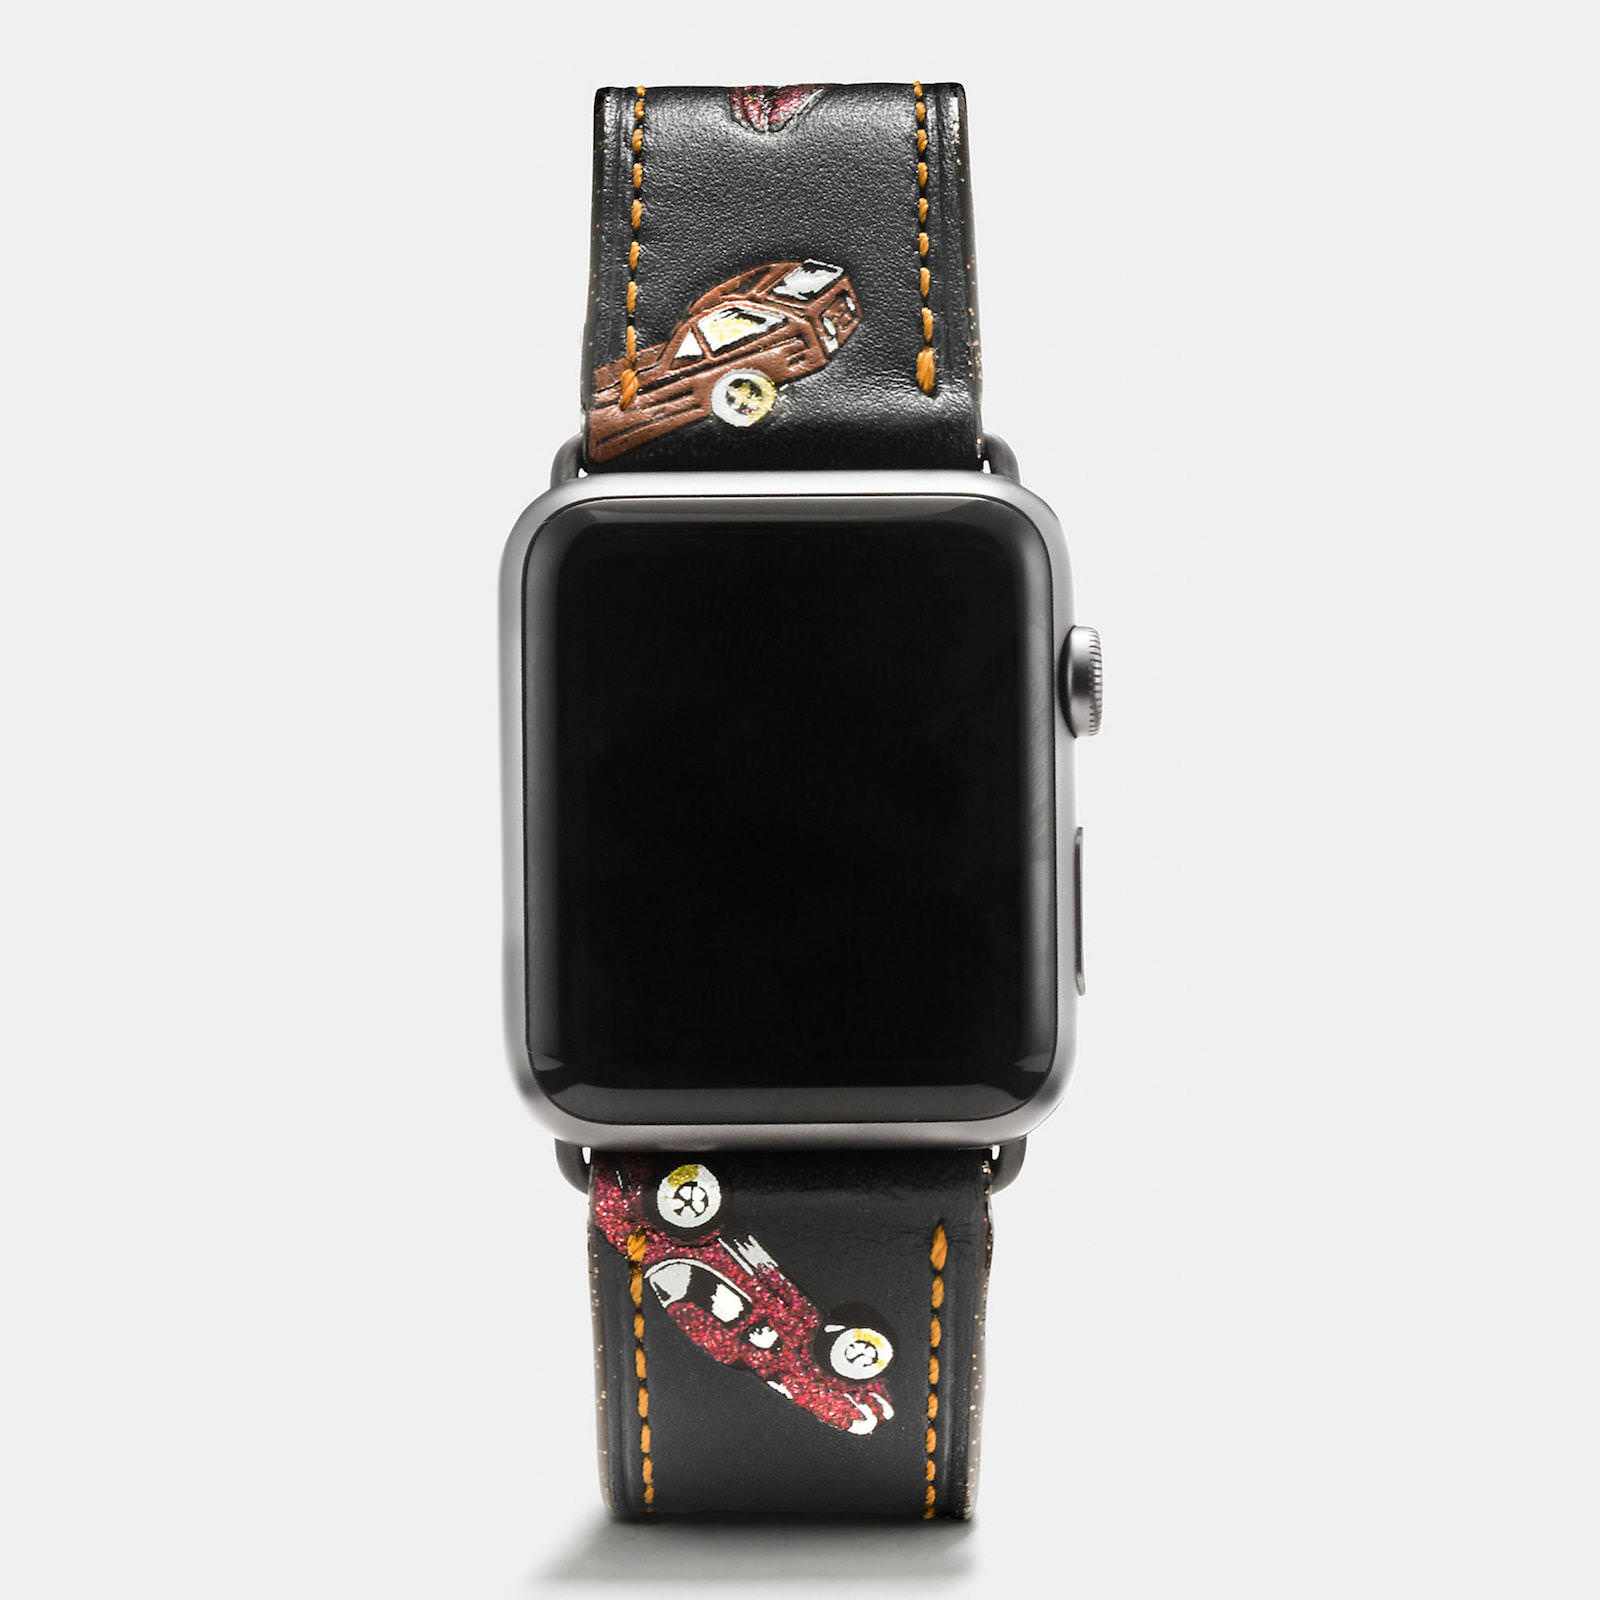 Apple-Watch-Coach-Band-Autumn-Season-1.jpeg